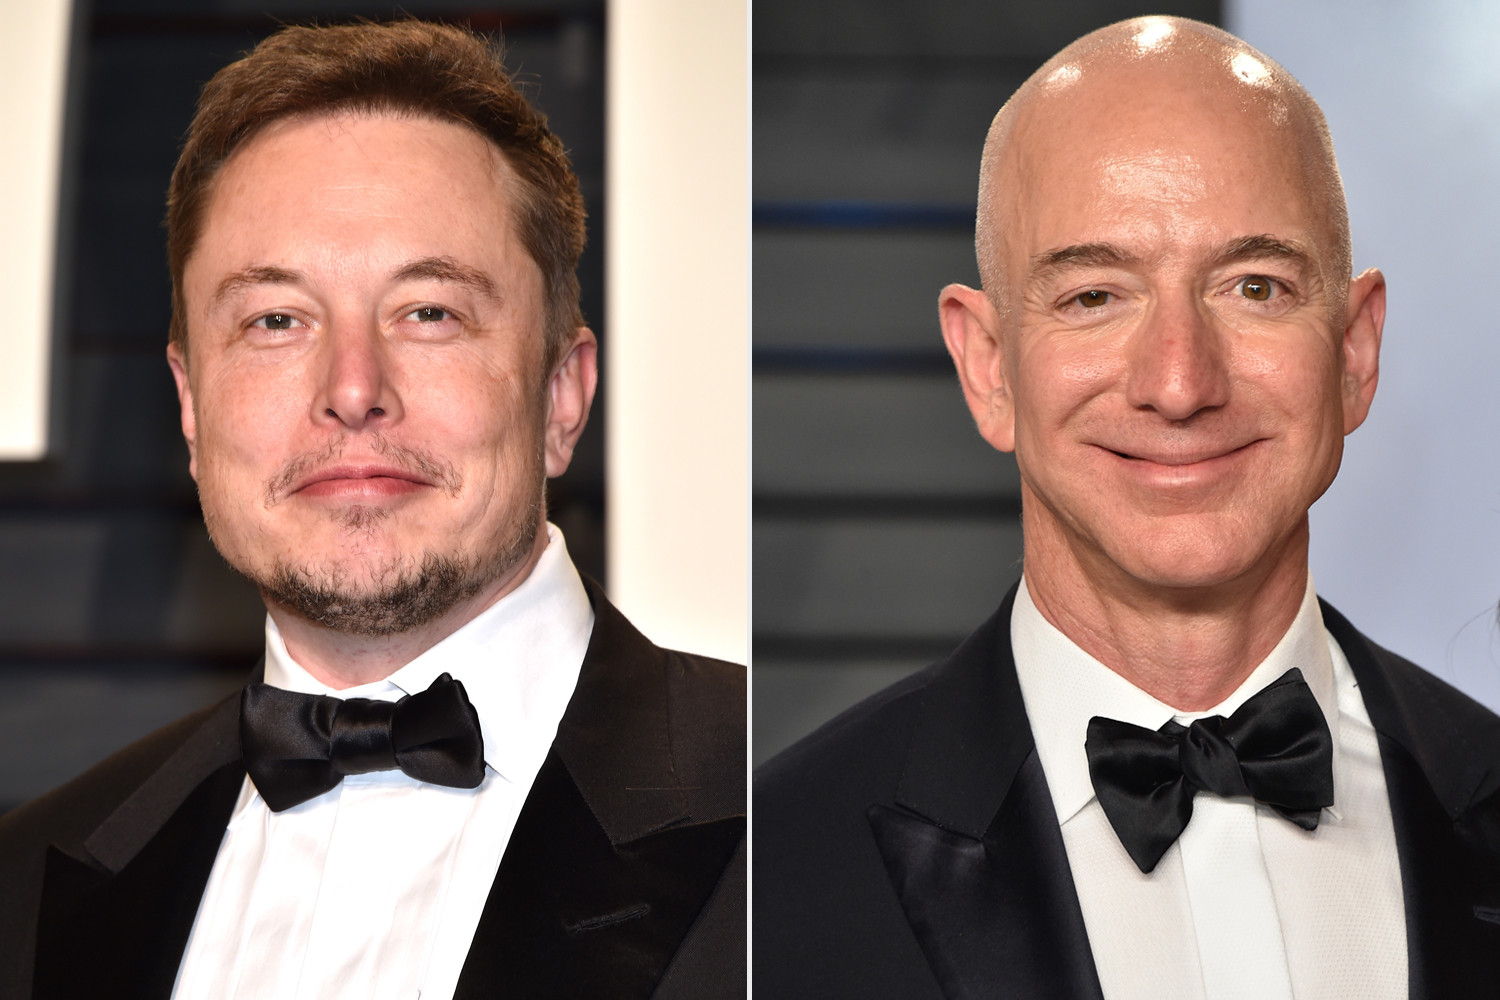 Elon Musk loses $27billion in just one week and falls behind Jeff Bezos to become the world